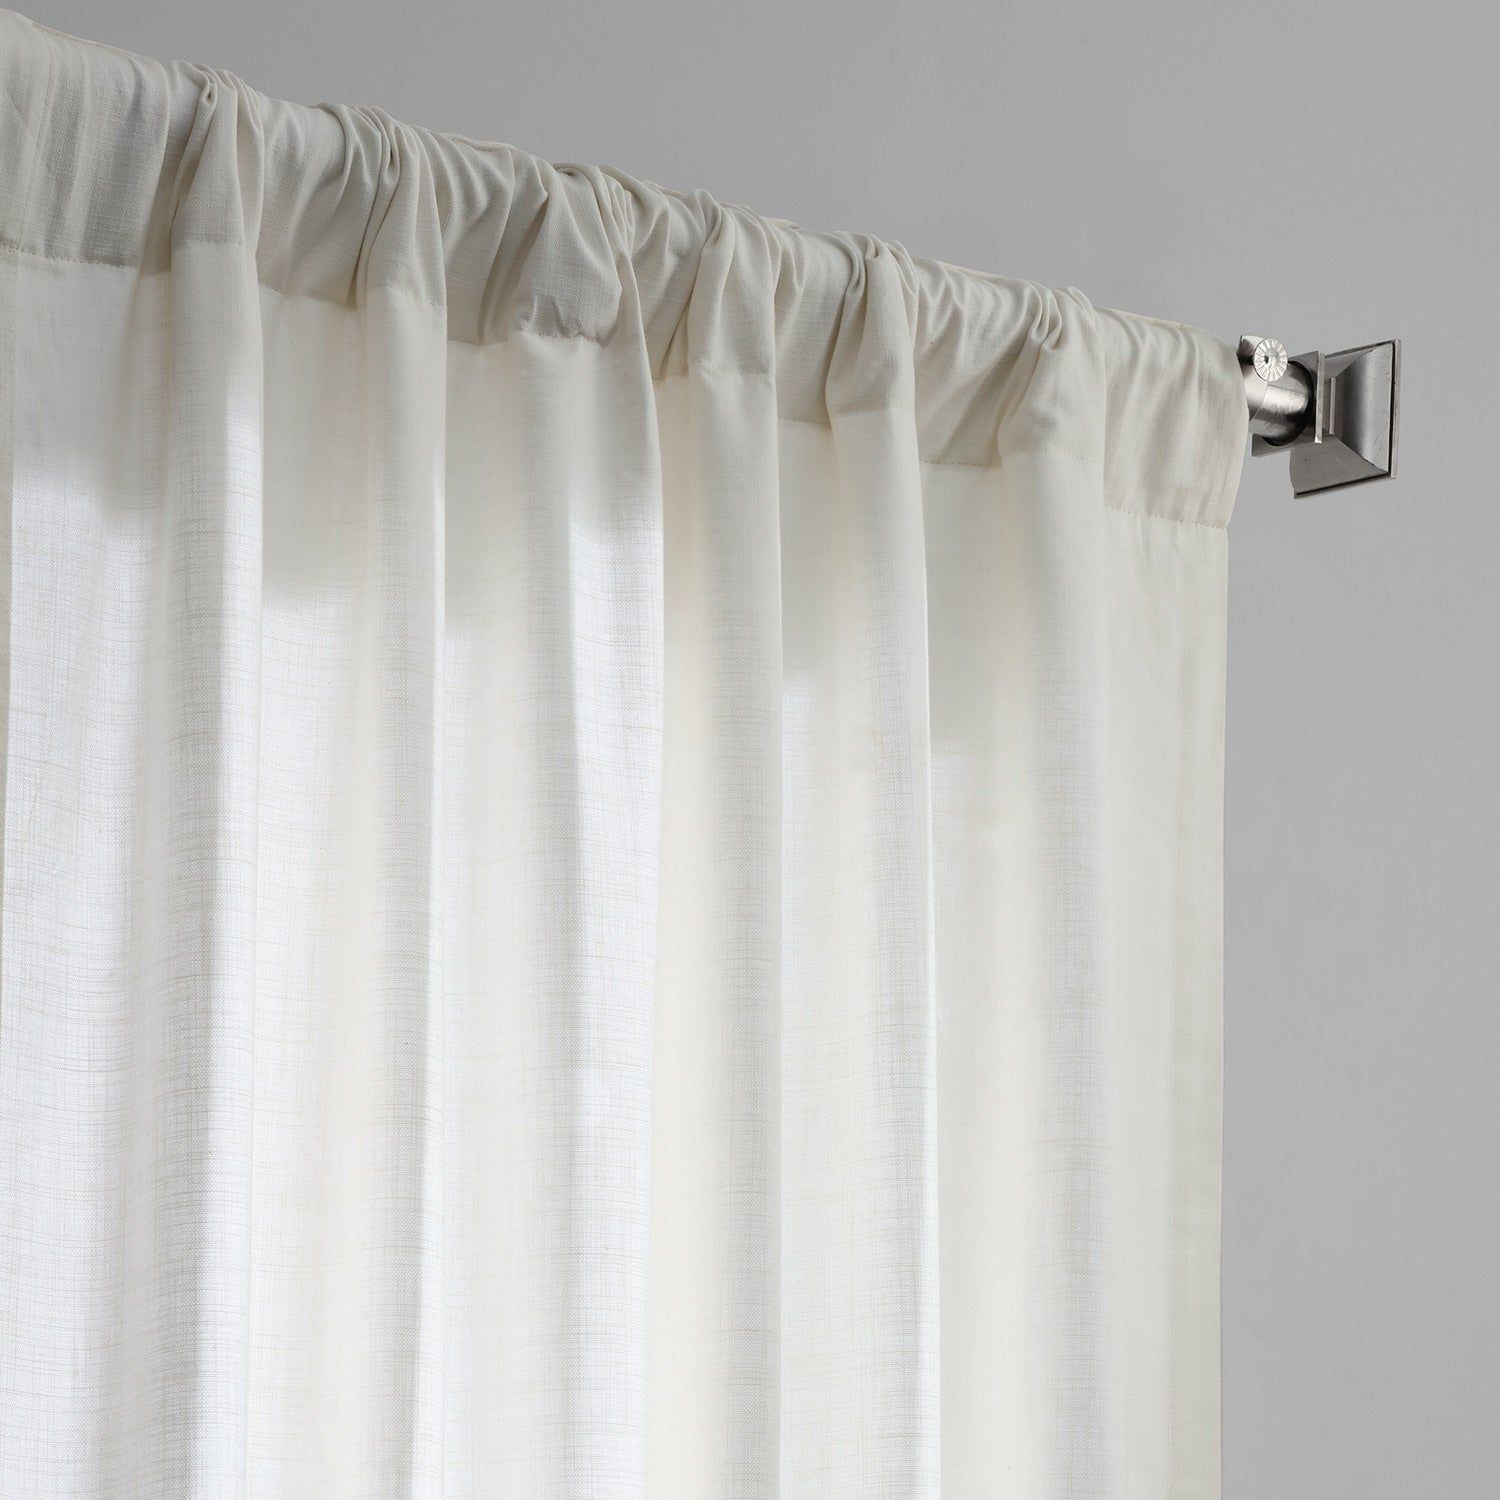 Exclusive Fabrics Solid Country Cotton Linen Weave Curtain Panel Pertaining To Solid Country Cotton Linen Weave Curtain Panels (View 17 of 30)